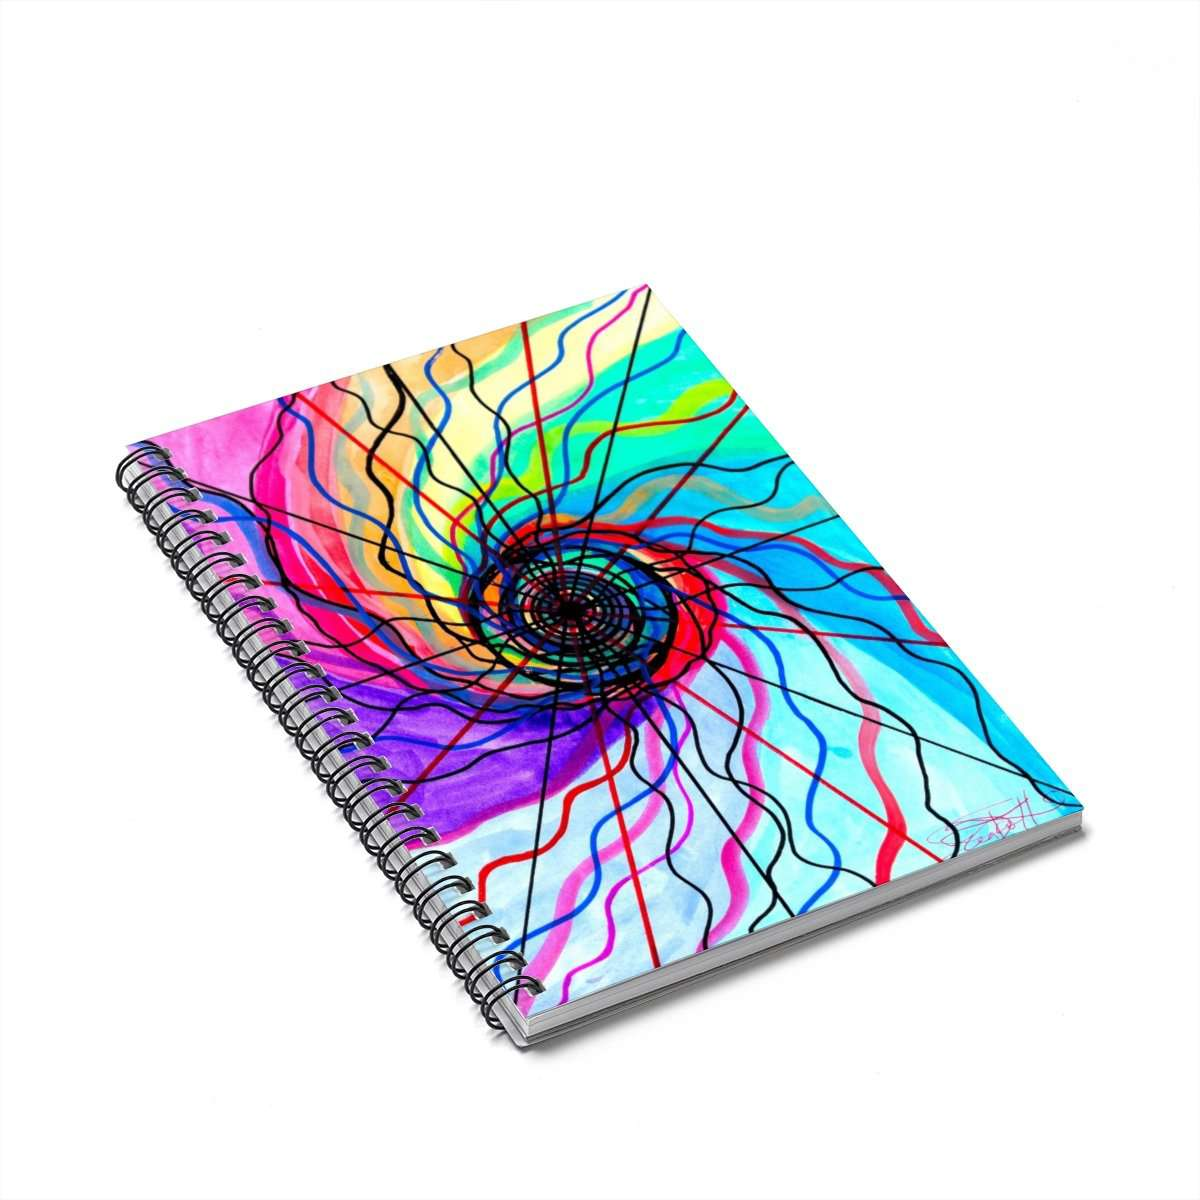 Convolution - Spiral Notebook